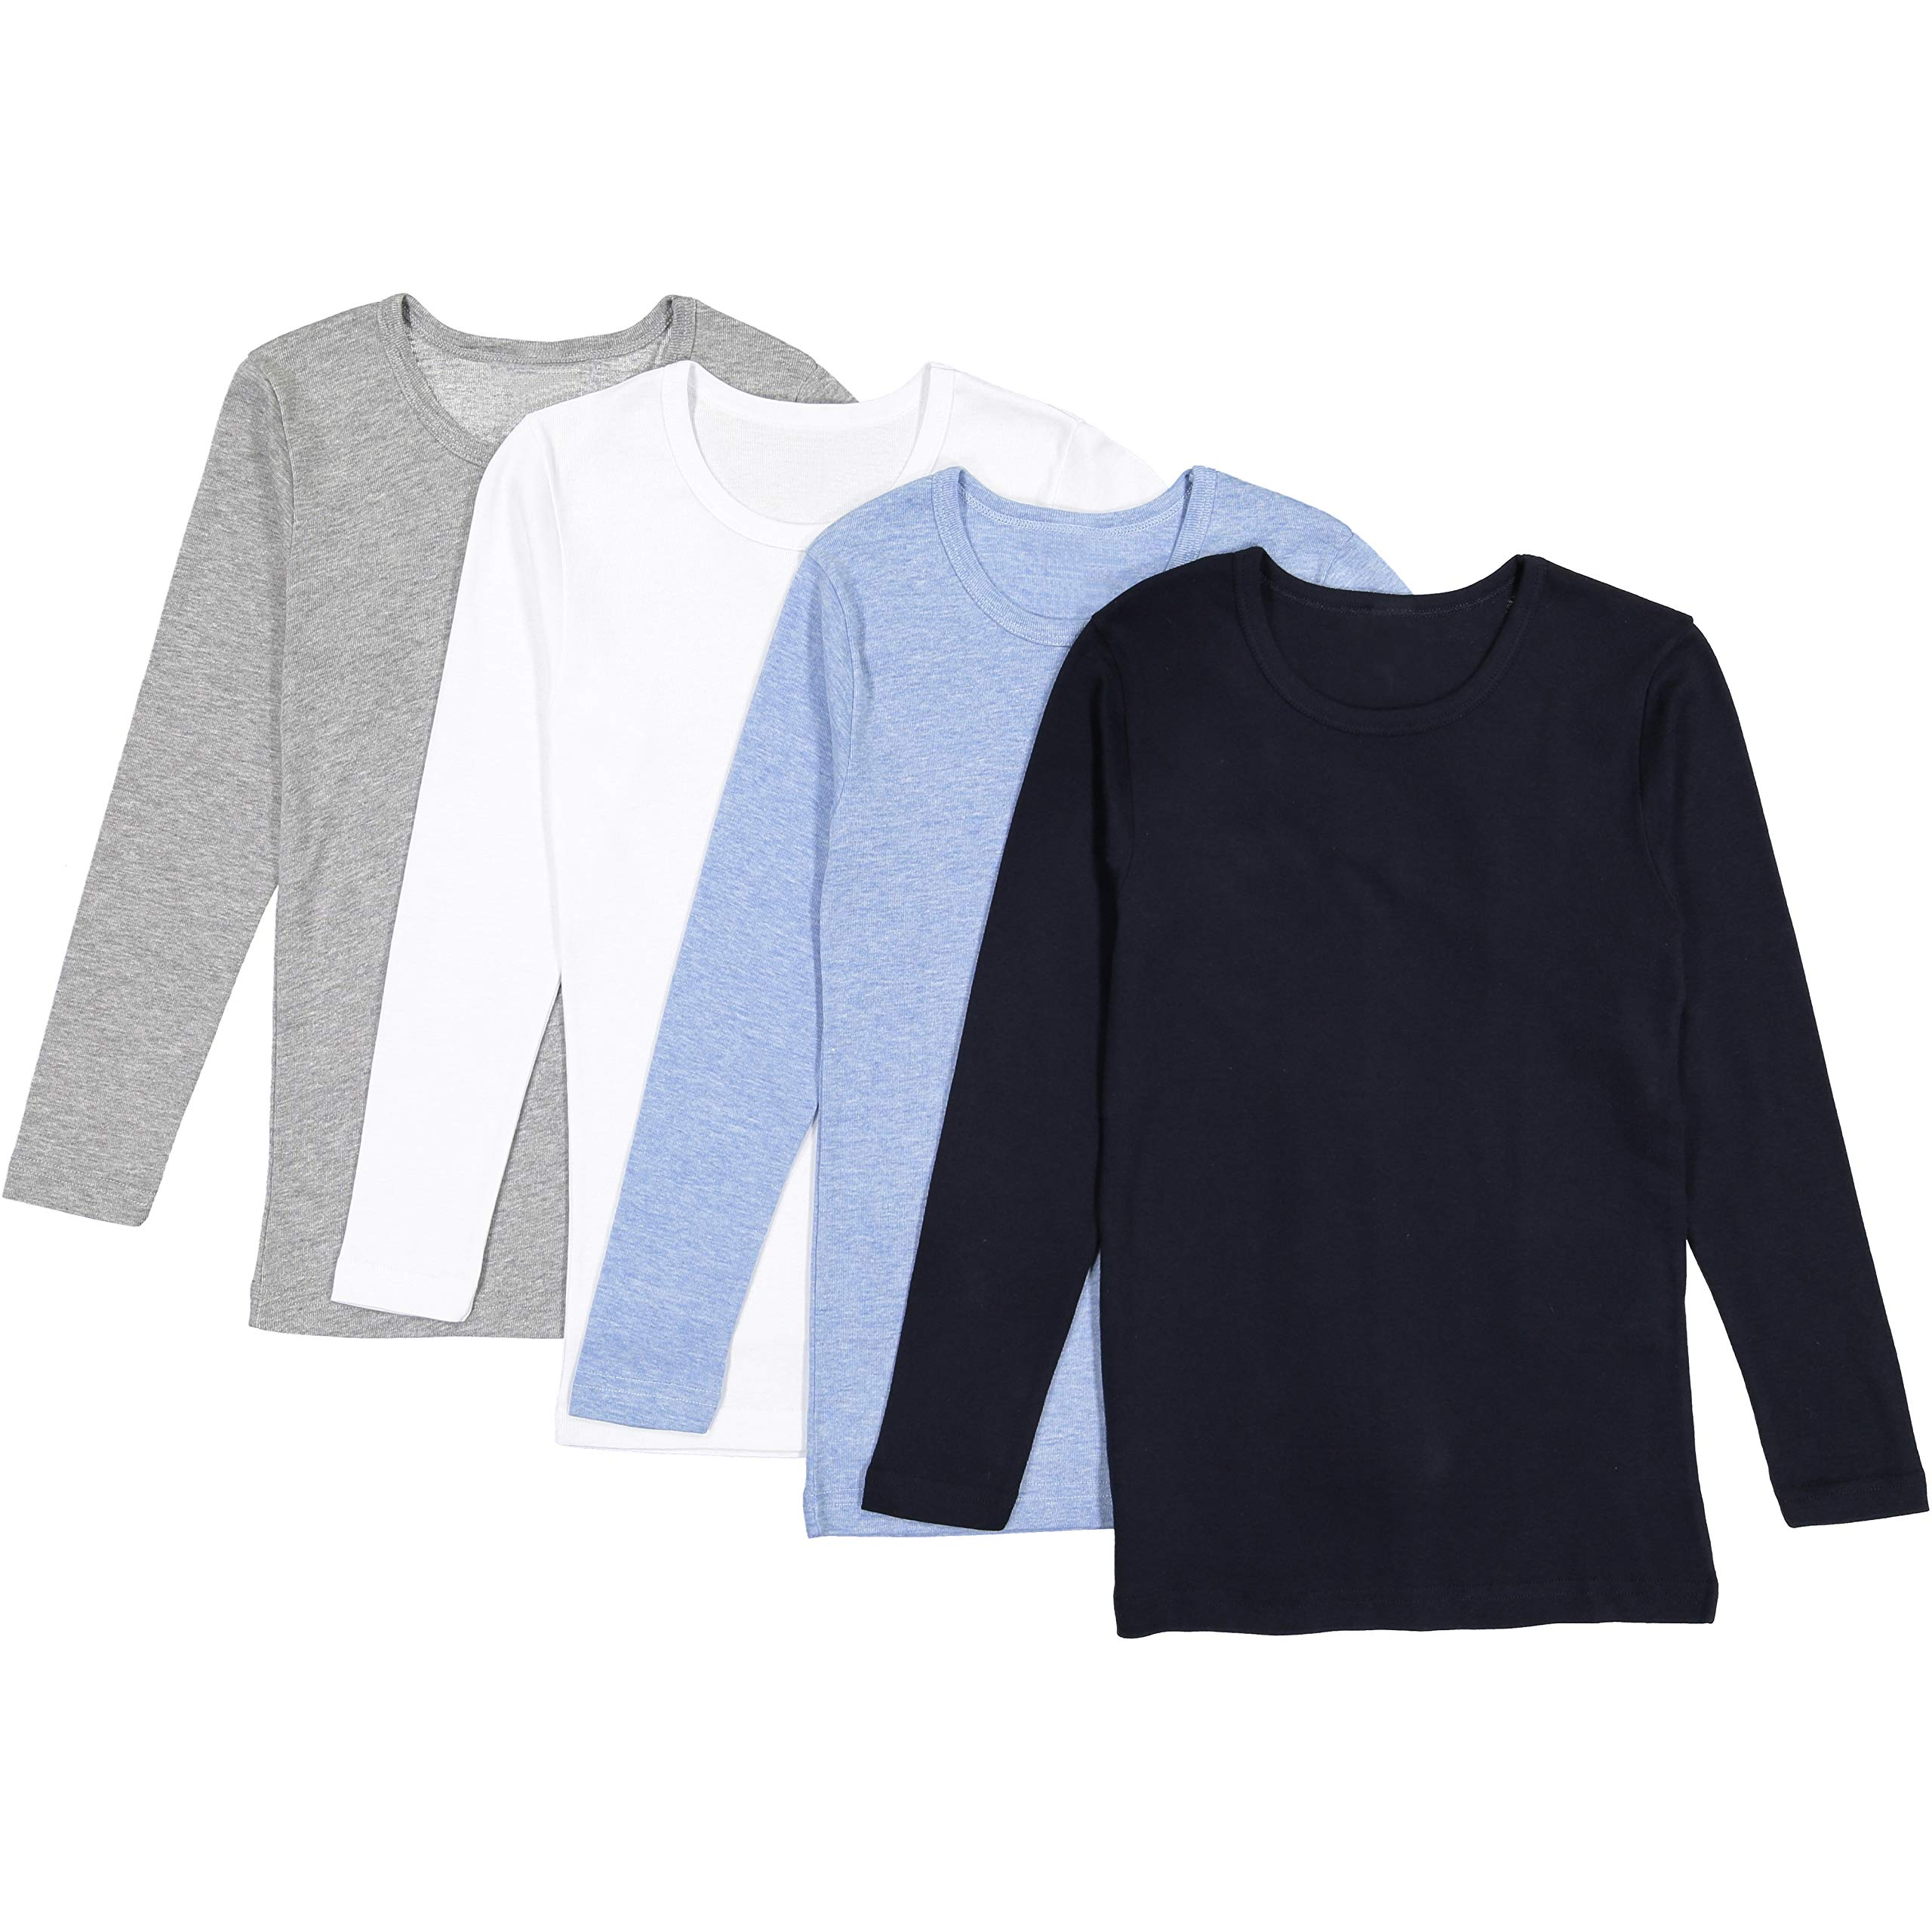 Brix Boys' Long Sleeve Tees - Combed Cotton Super Soft 4-pk Crewneck Shirts. 9/10